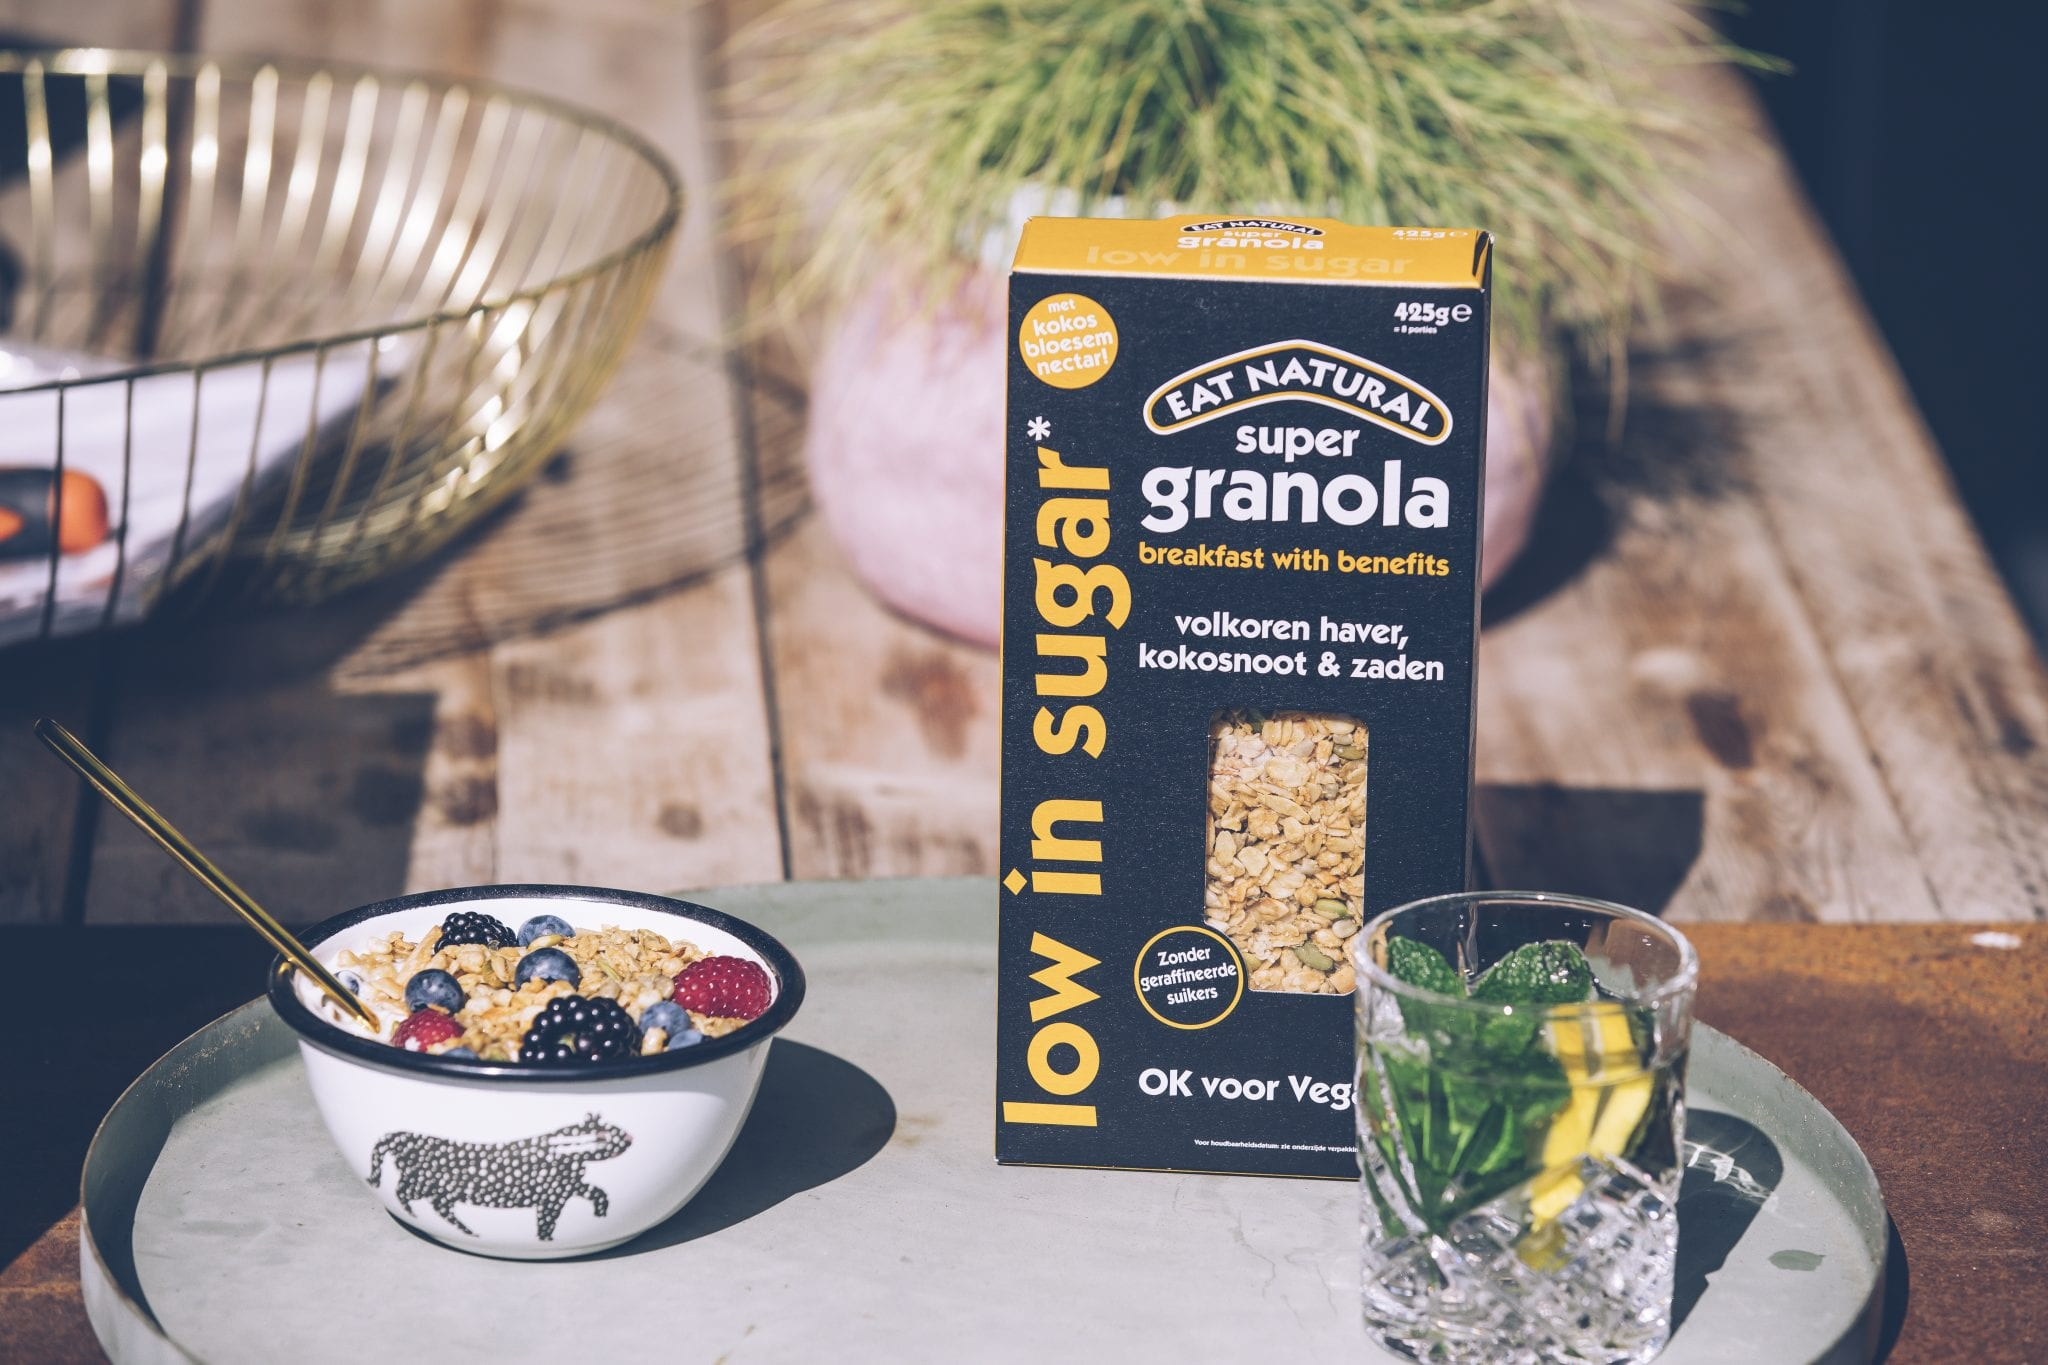 Eat Natural Low in Sugar Vegan Granola